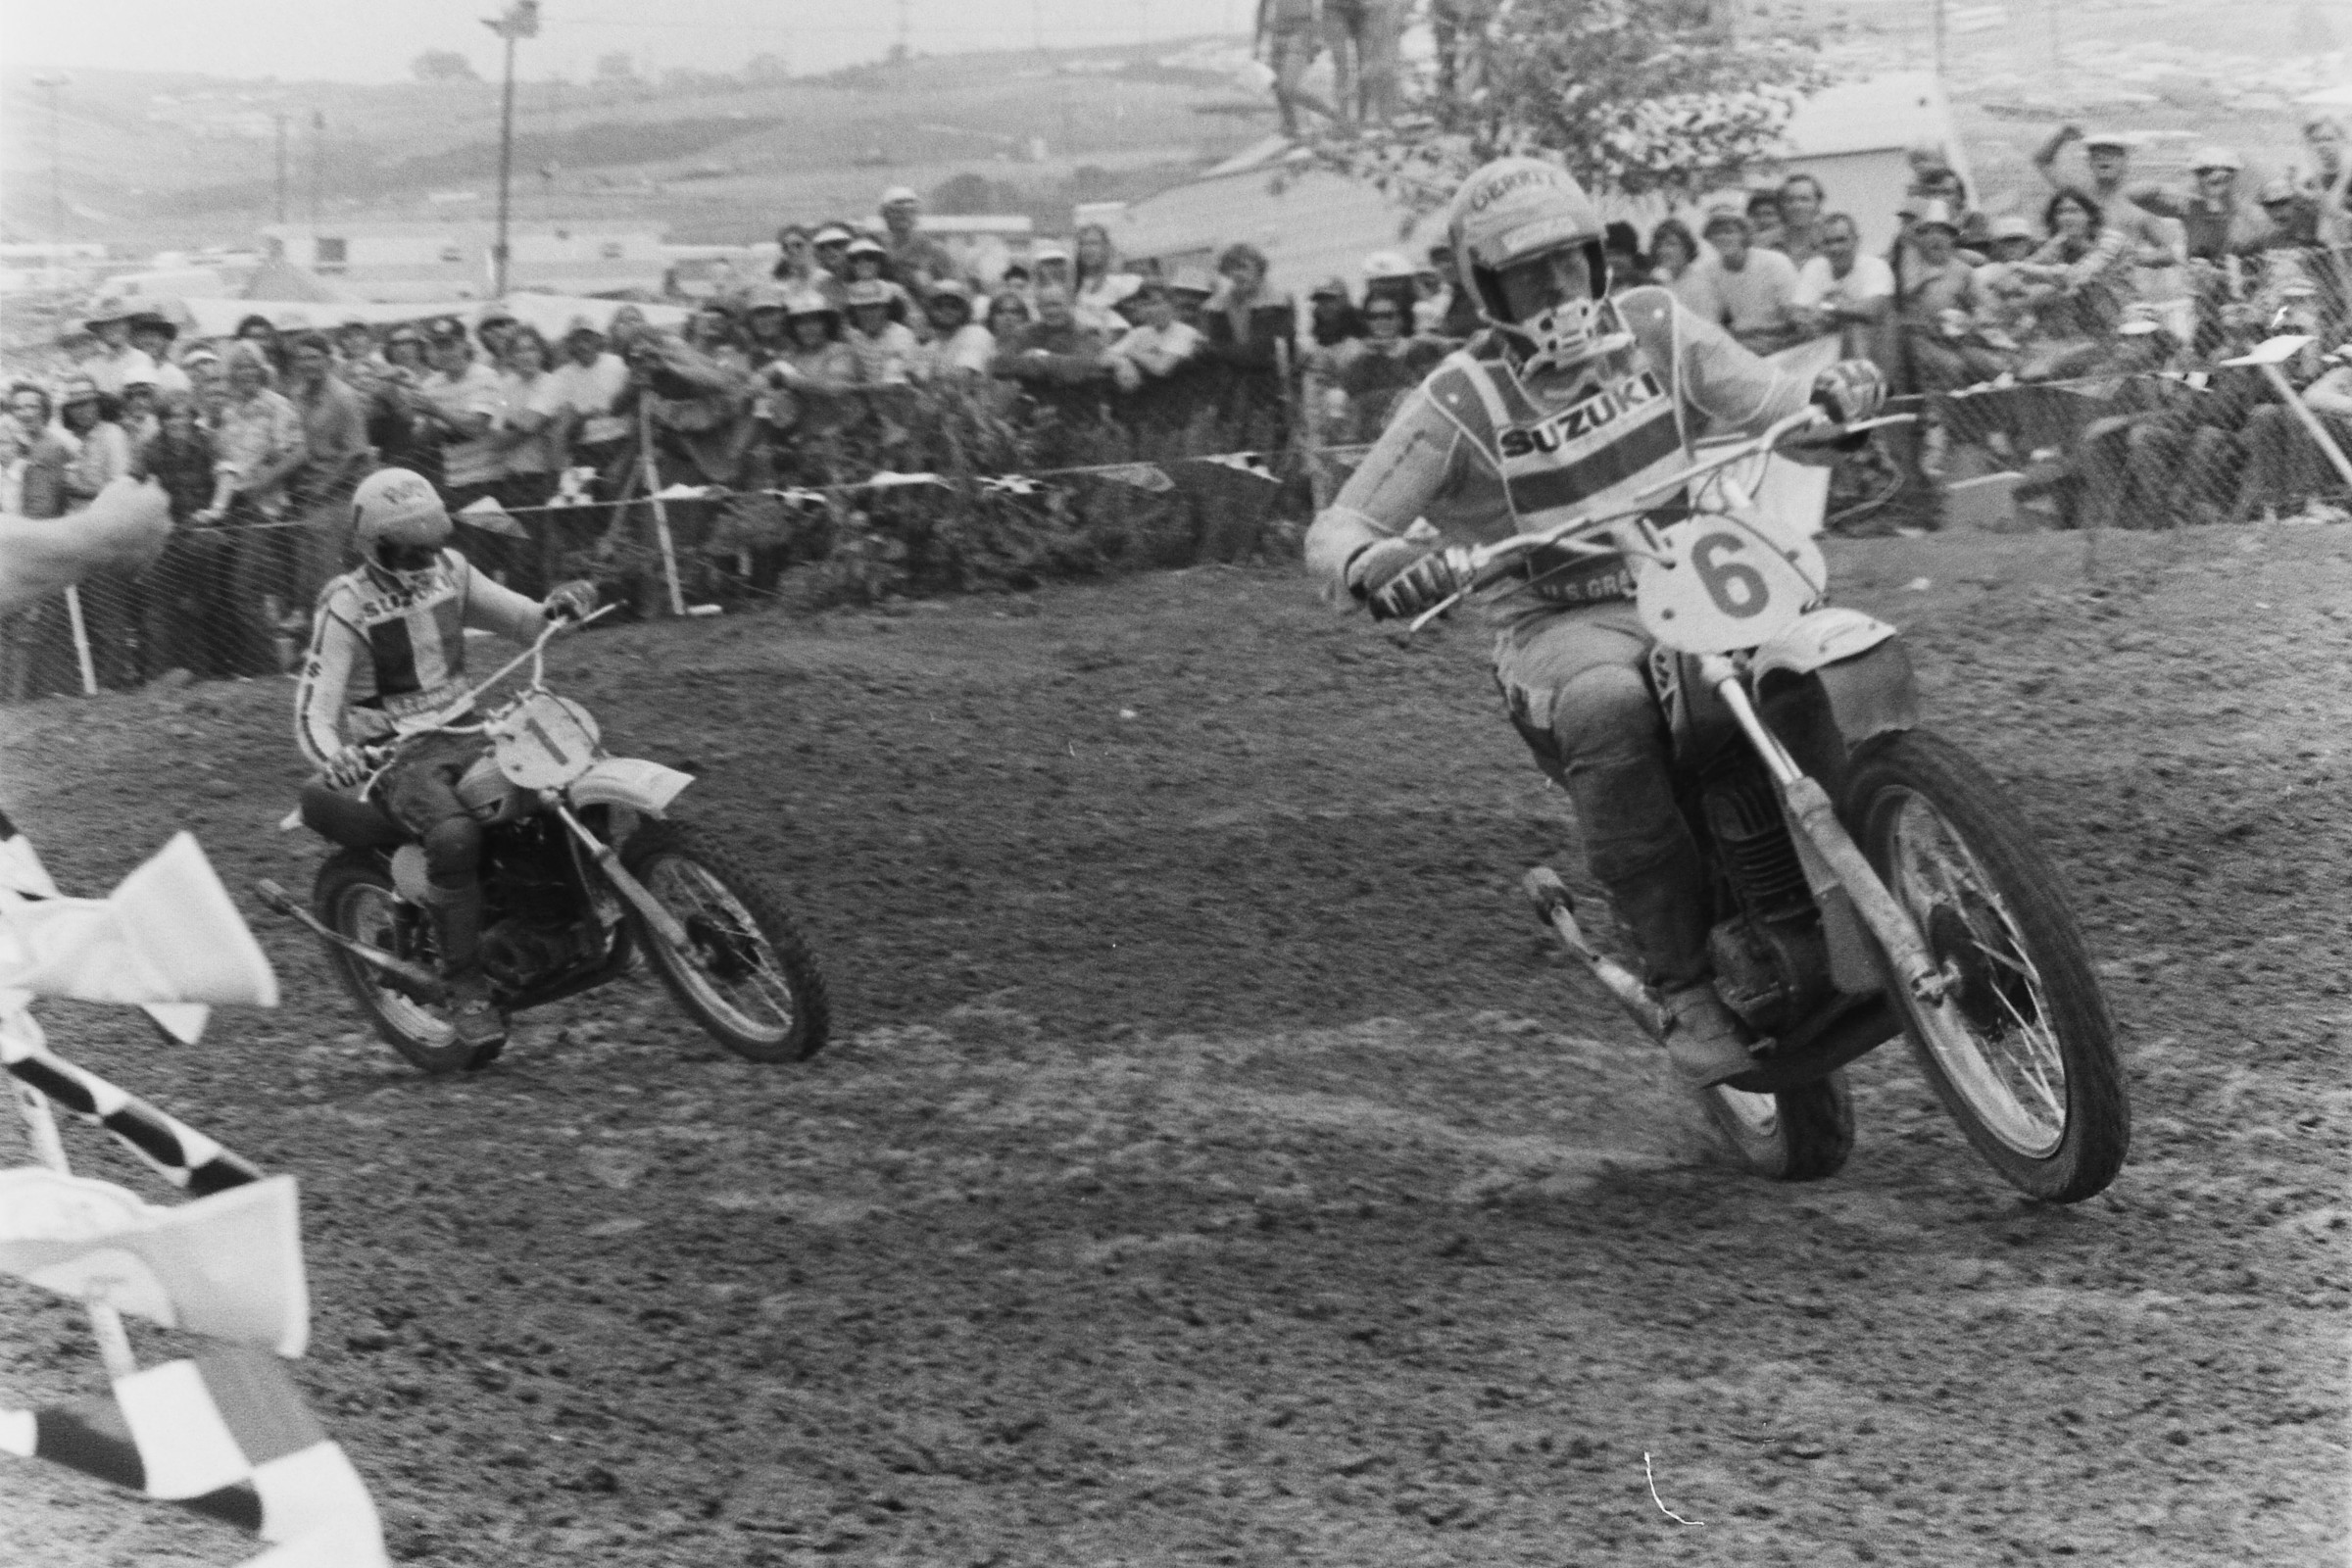 Gerrit Wolsink leads his Suzuki teammate DeCoster in the first moto.